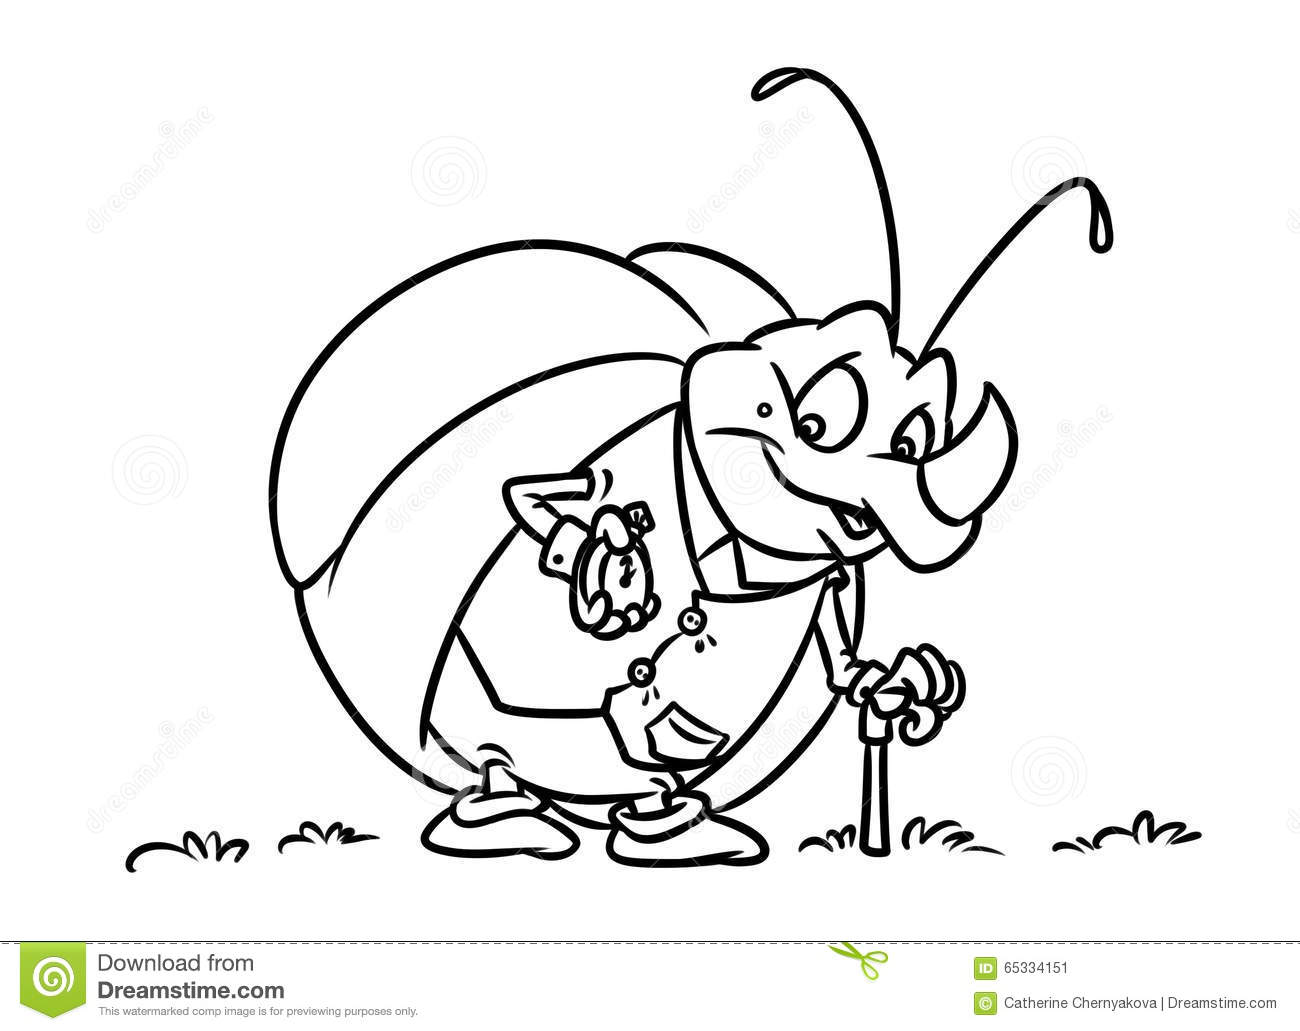 cartoon bug coloring pages - photo#20